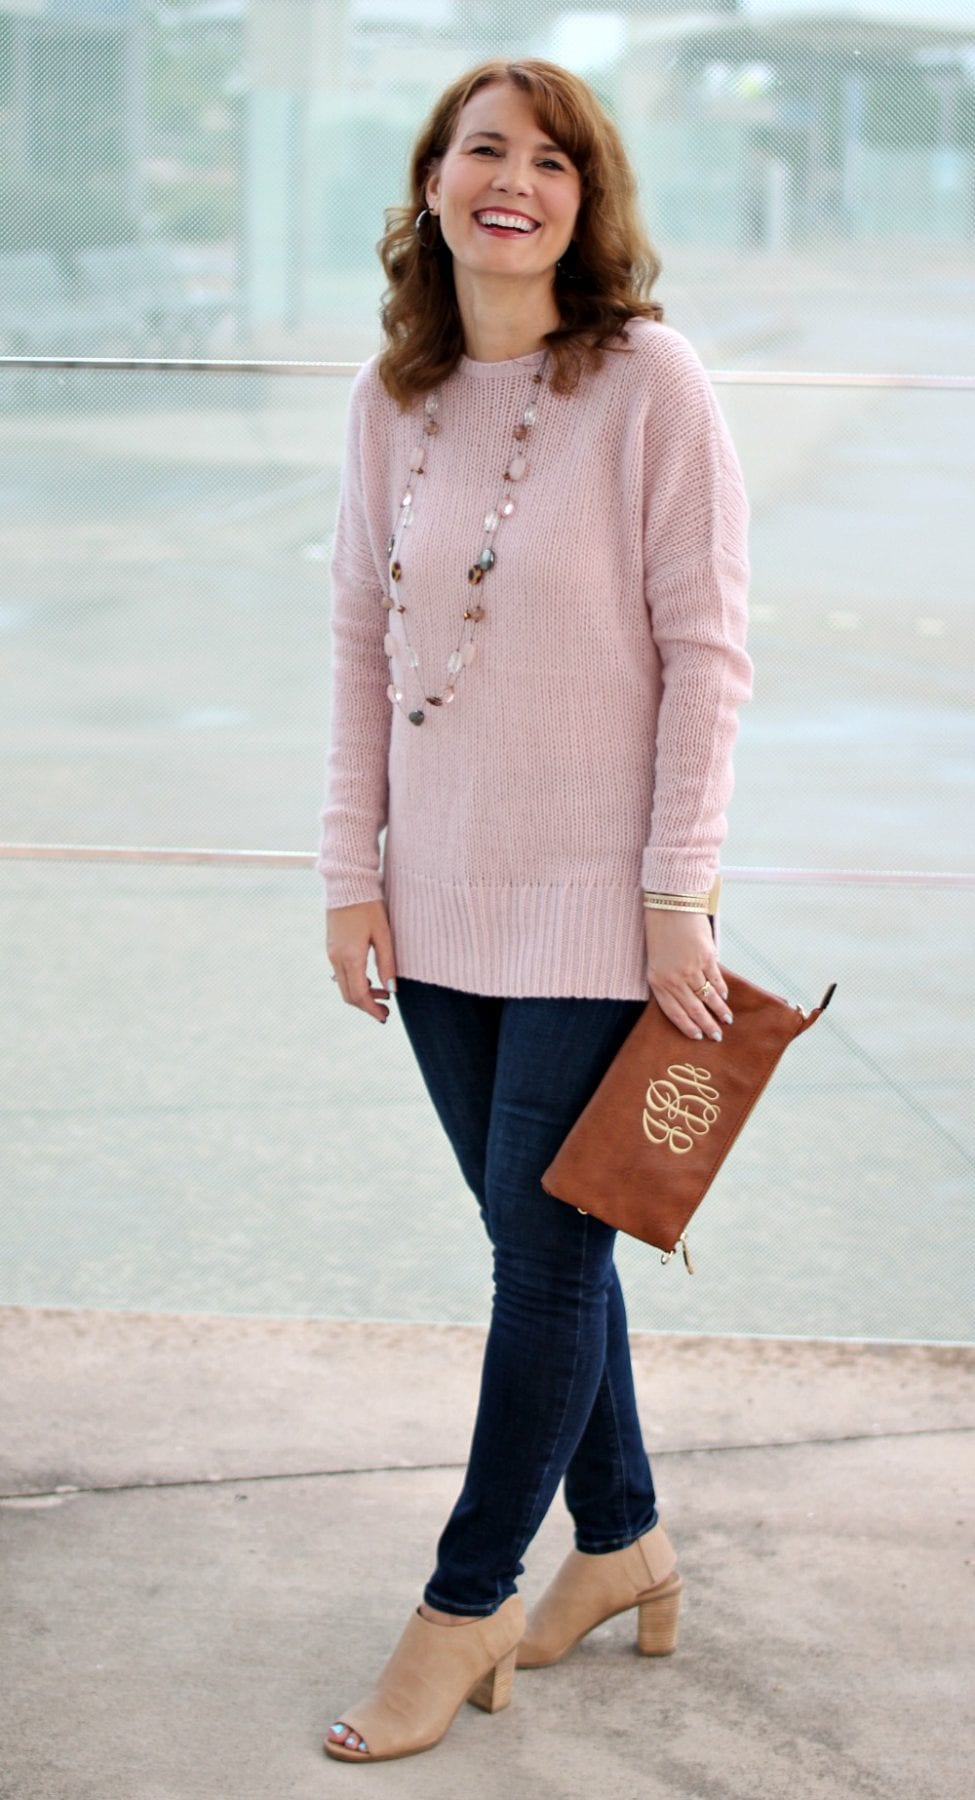 74e829f50dc Cashmere sweater outfit 03 Cashmere sweater outfit 05